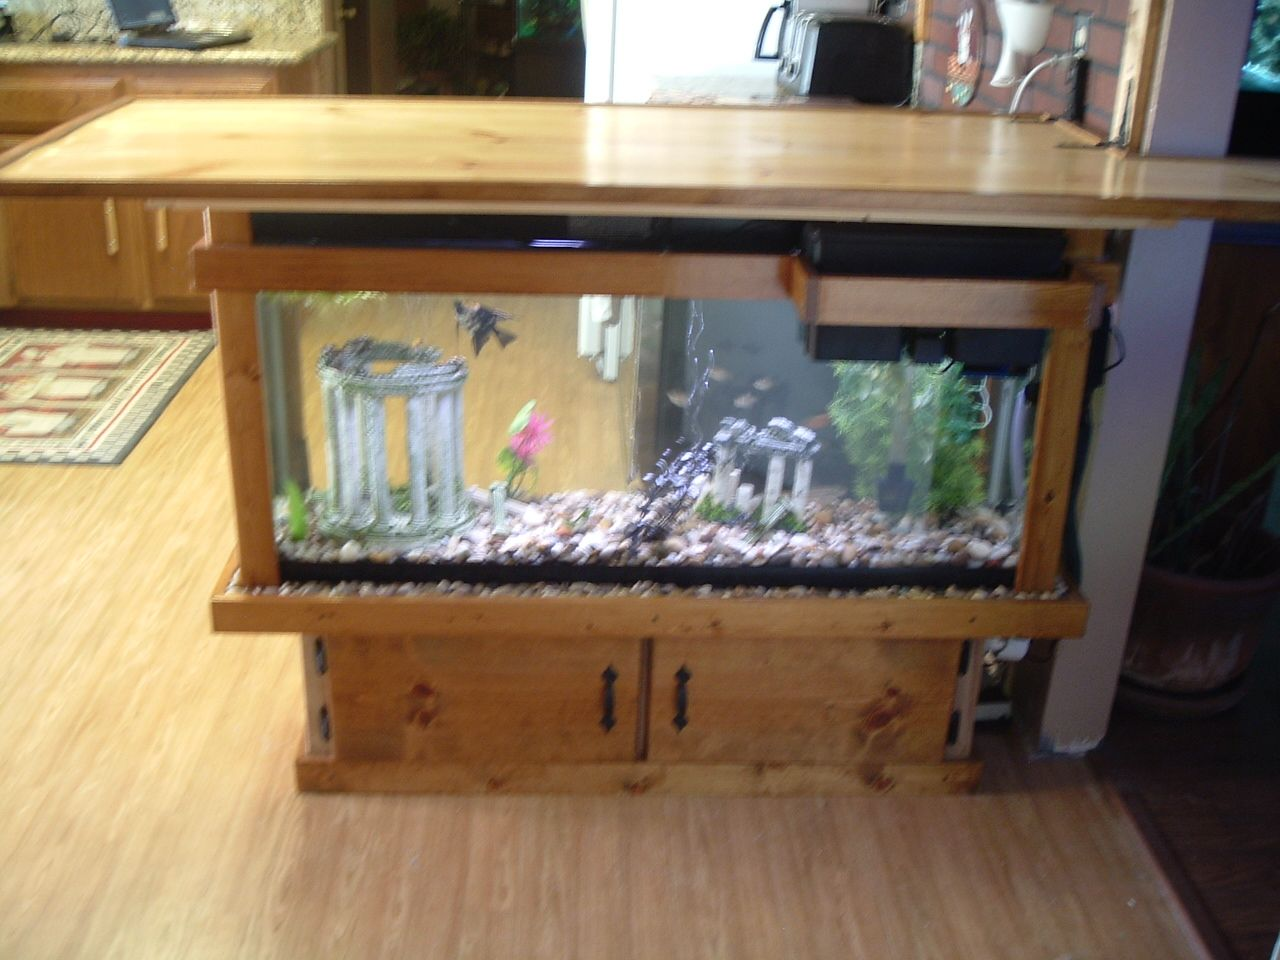 Fish tank in kitchen - This Is A 55 Gallon Fish Tank Bar That Sits In Our Kitchen I